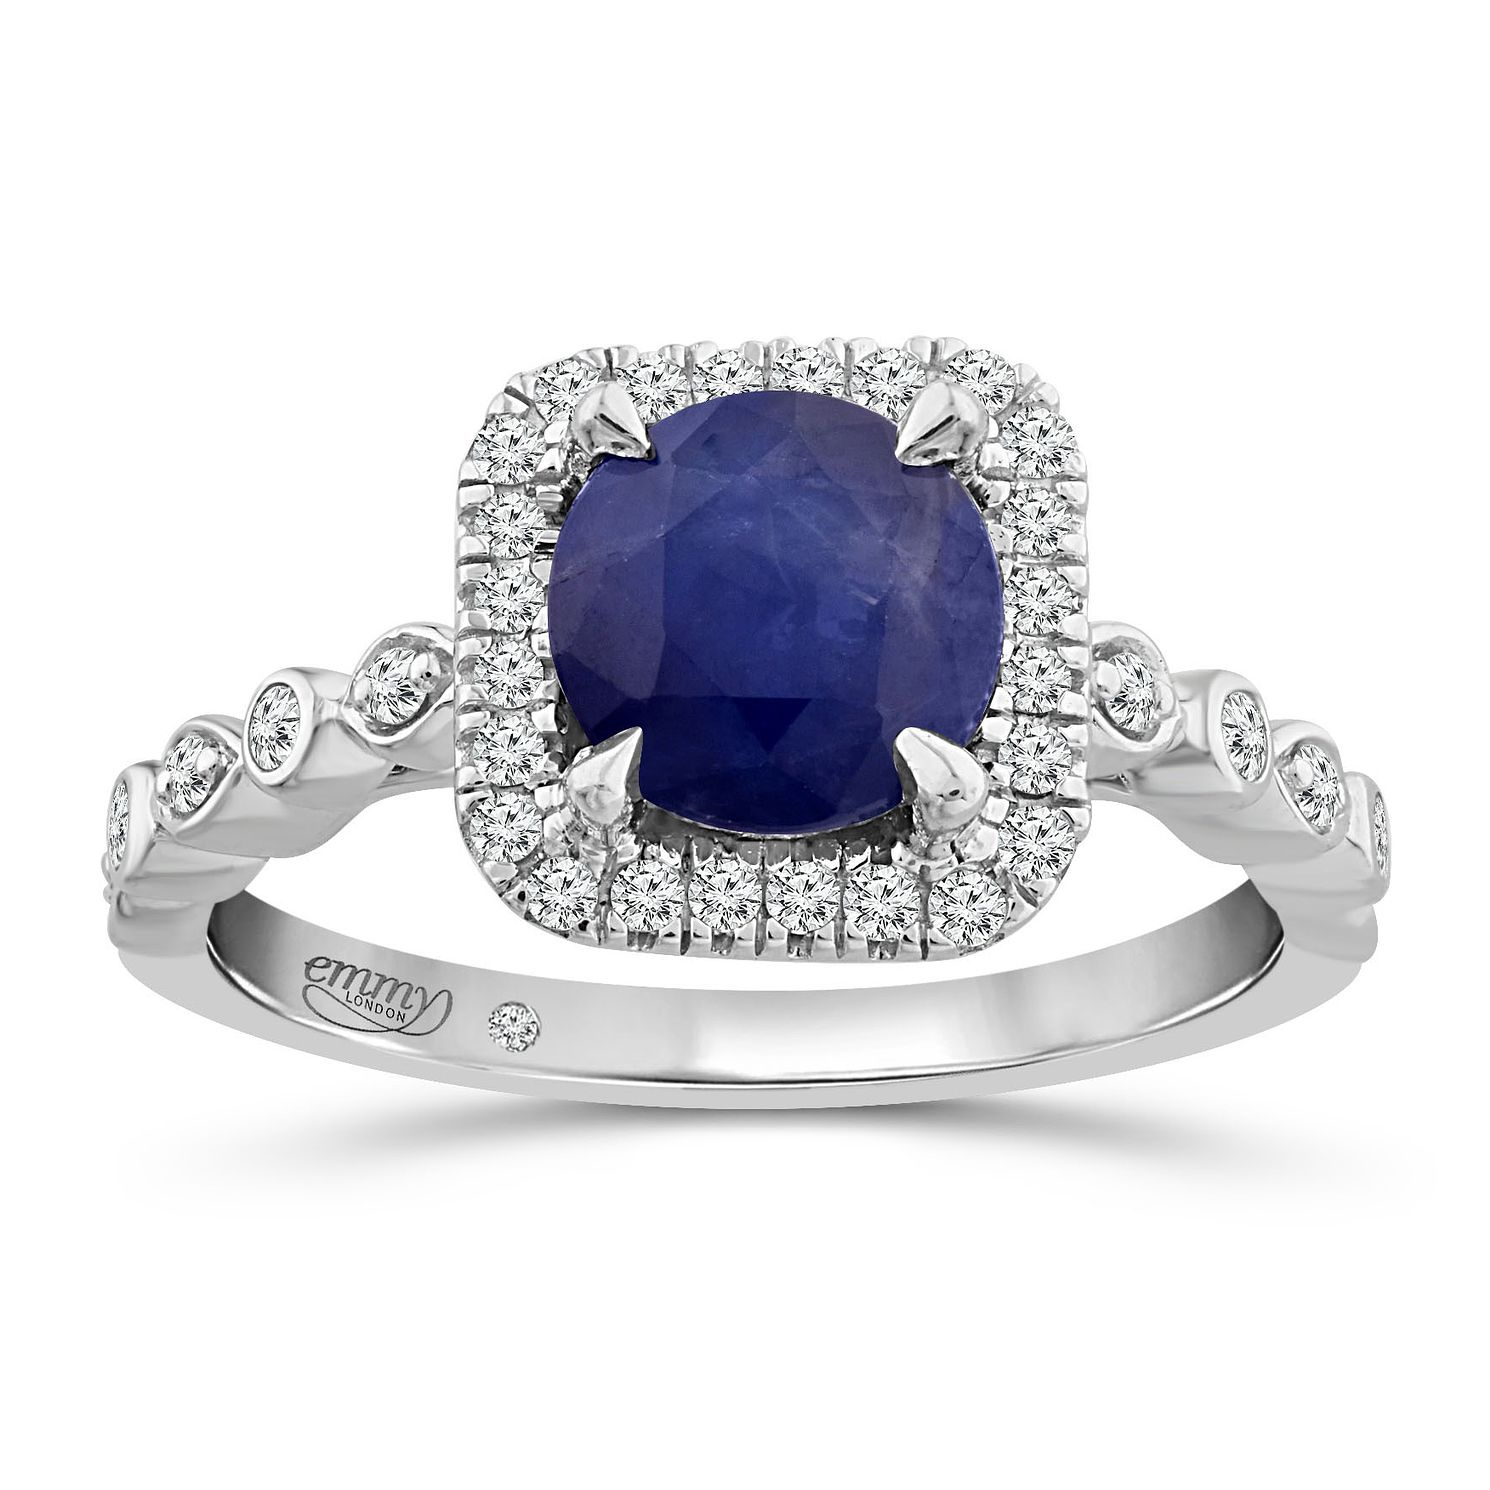 Emmy London 18ct White Gold Sapphire & 1/5ct Diamond Ring - Product number 5171237